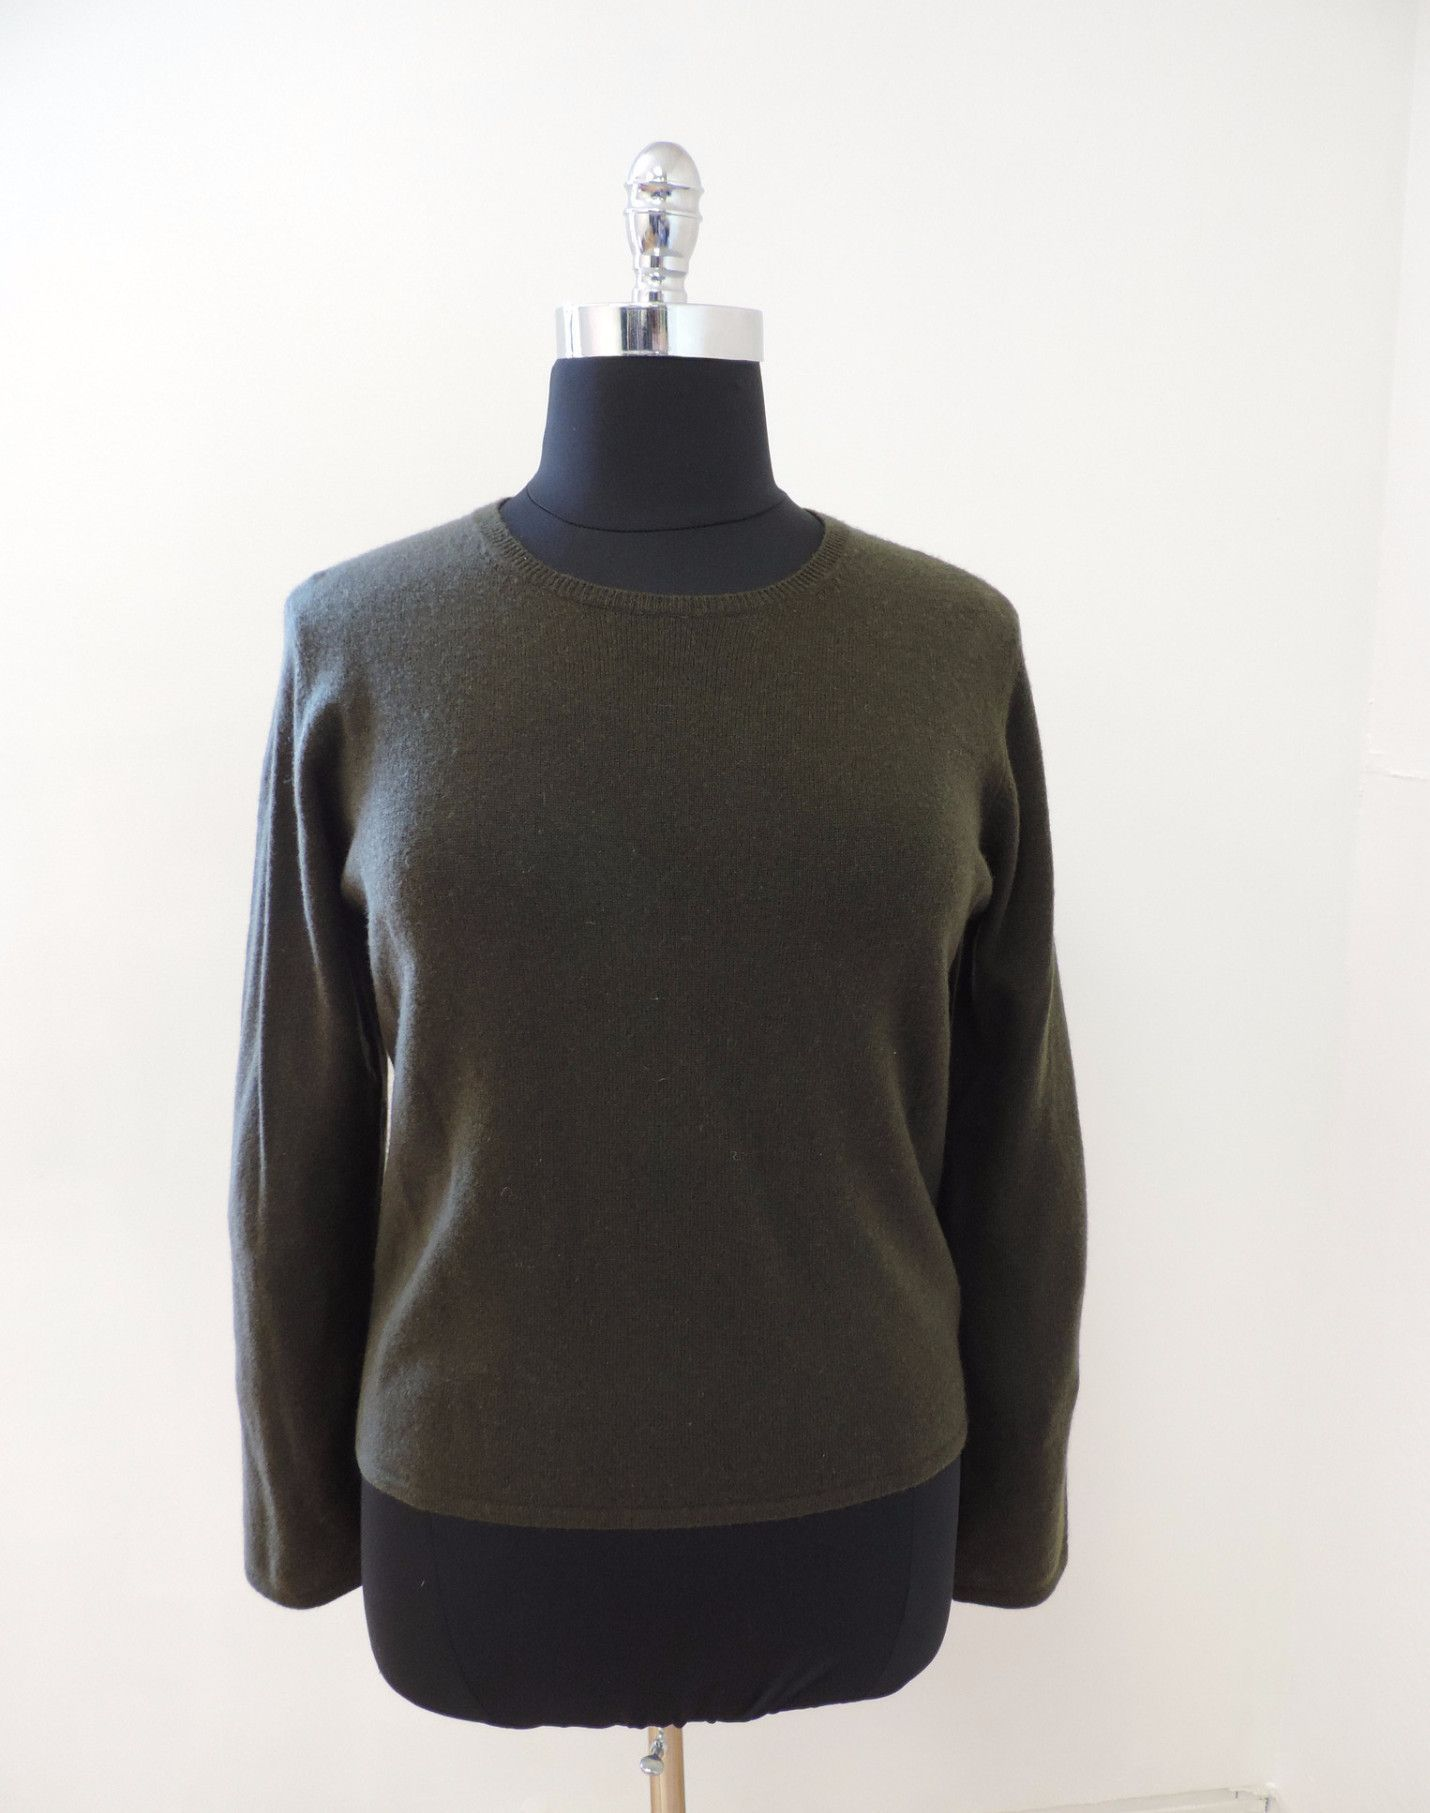 Olive green cashmere sweater